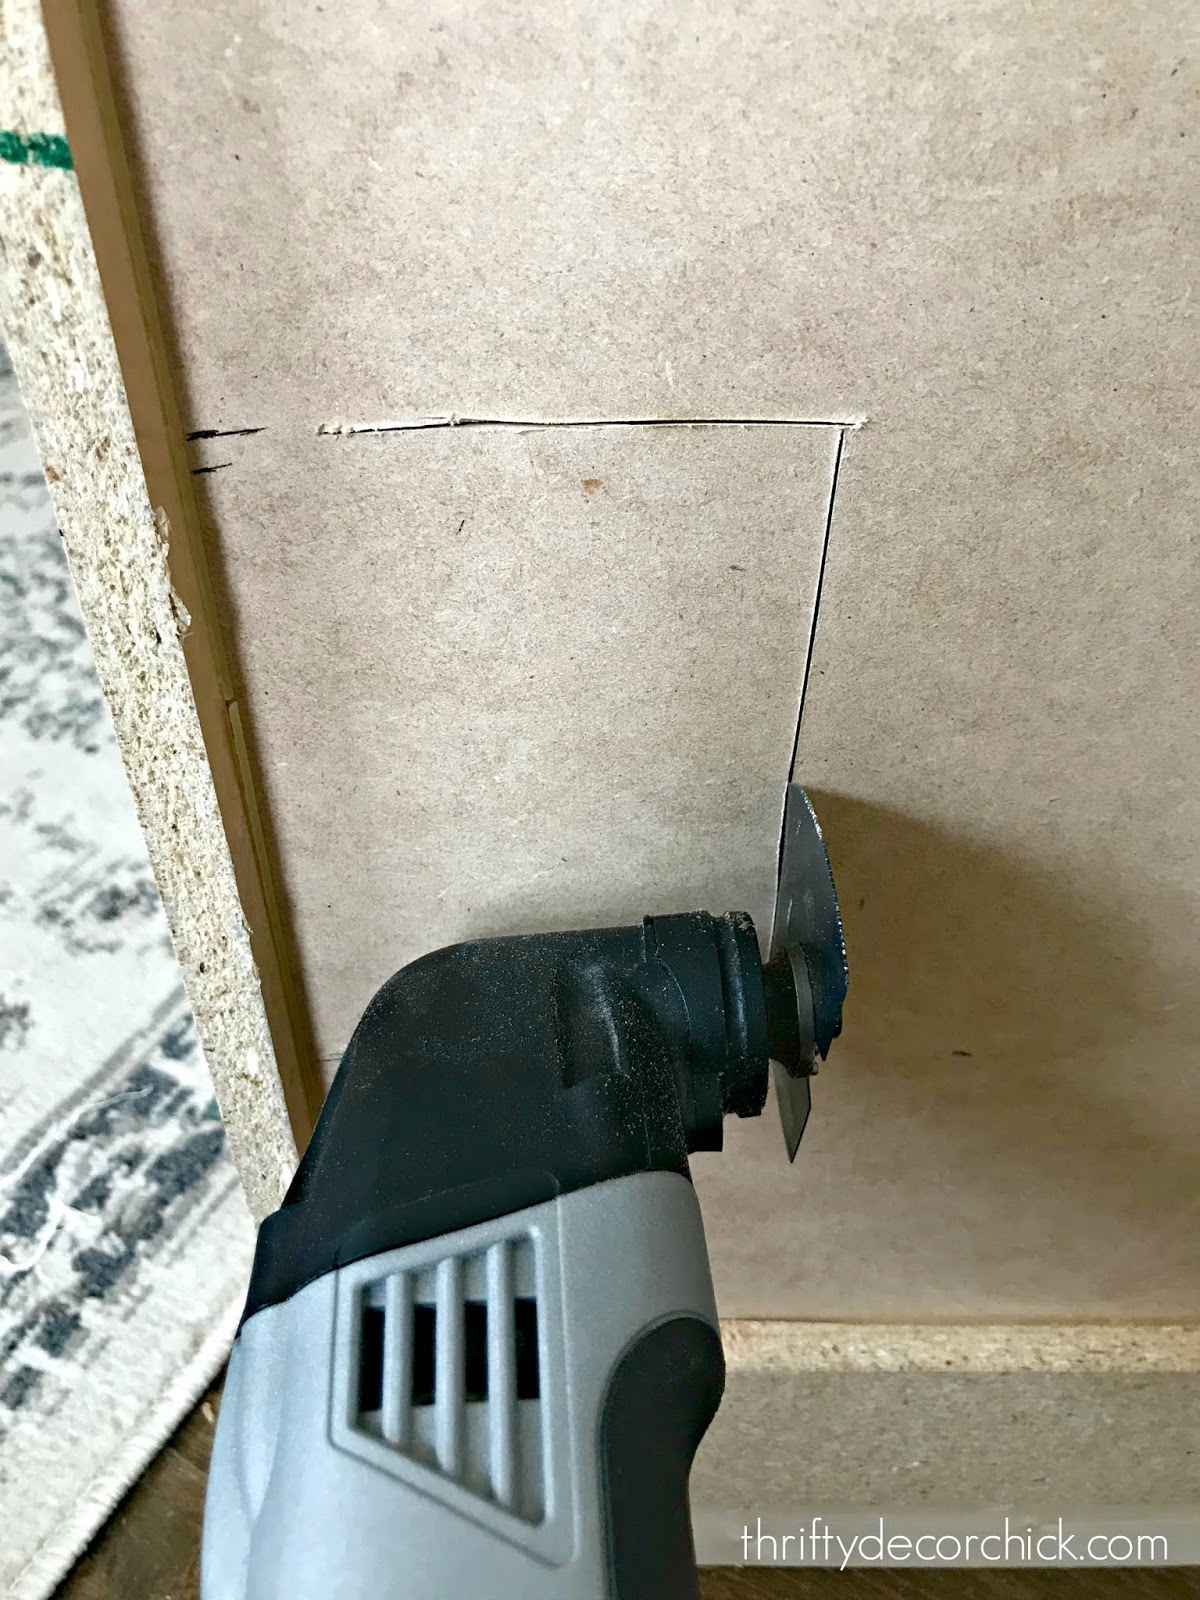 Easily cut holes with Dremel cutting tool